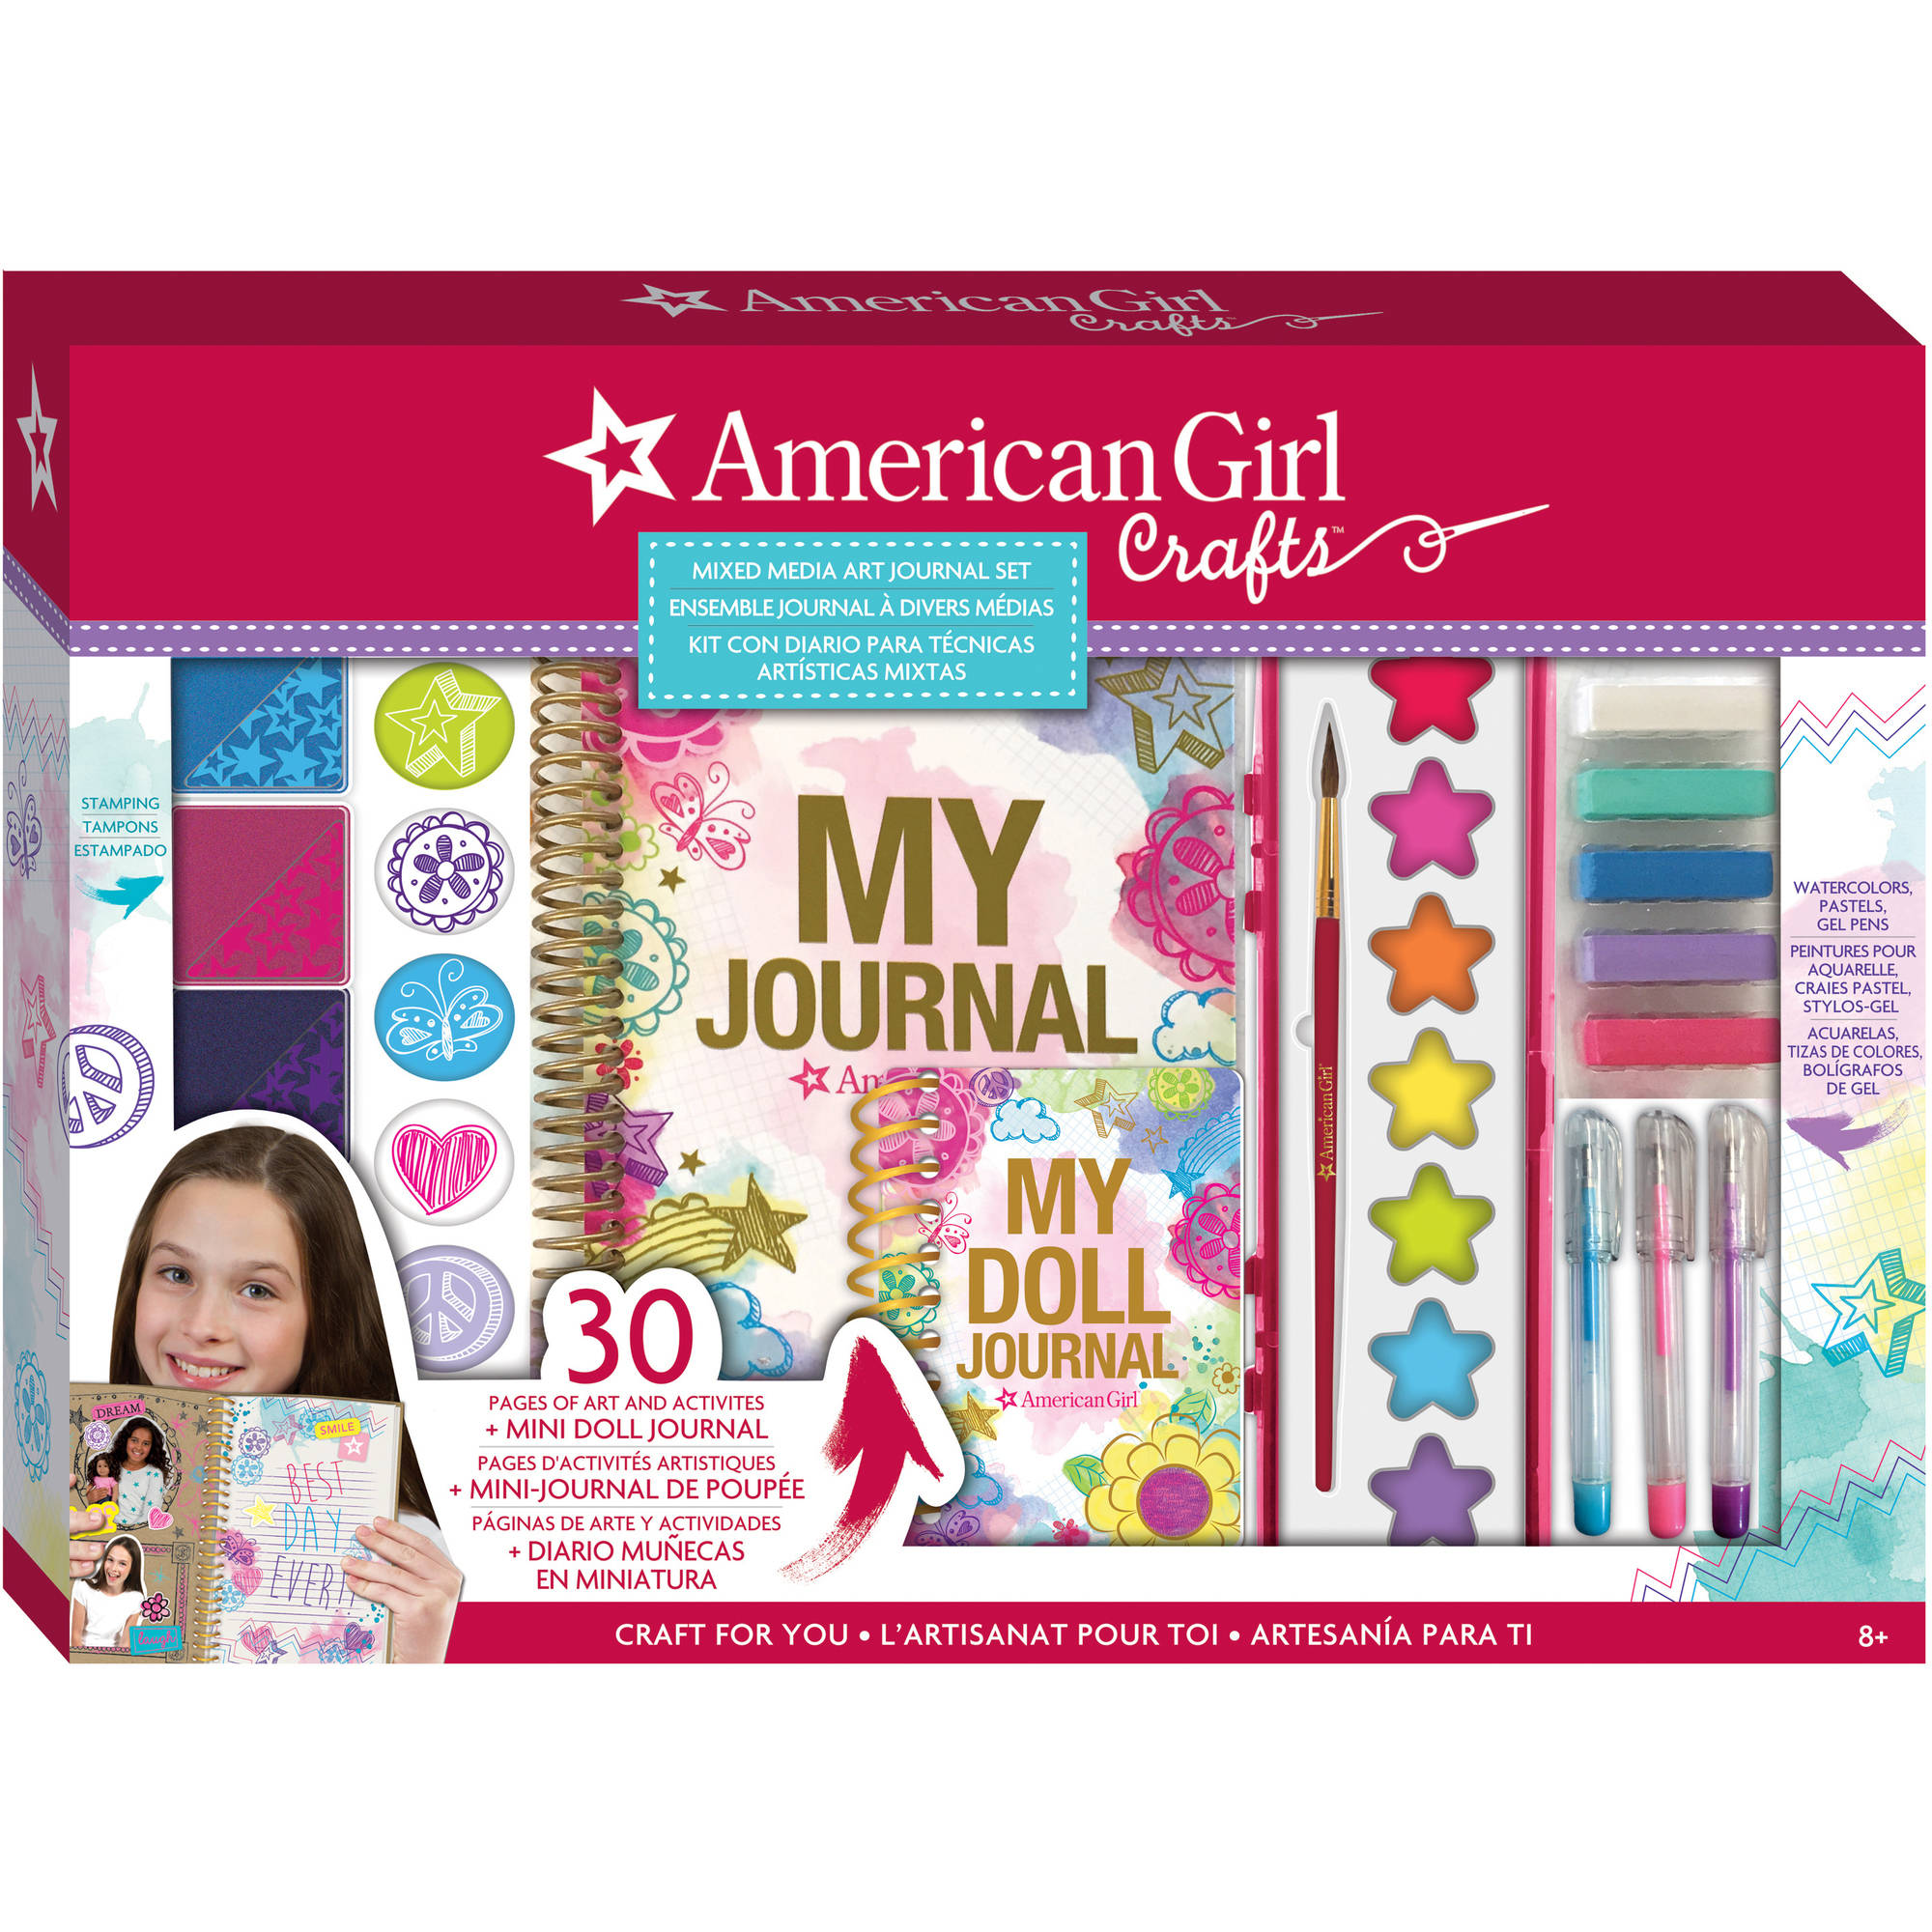 American Girl Mixed Media Art Journal Set by